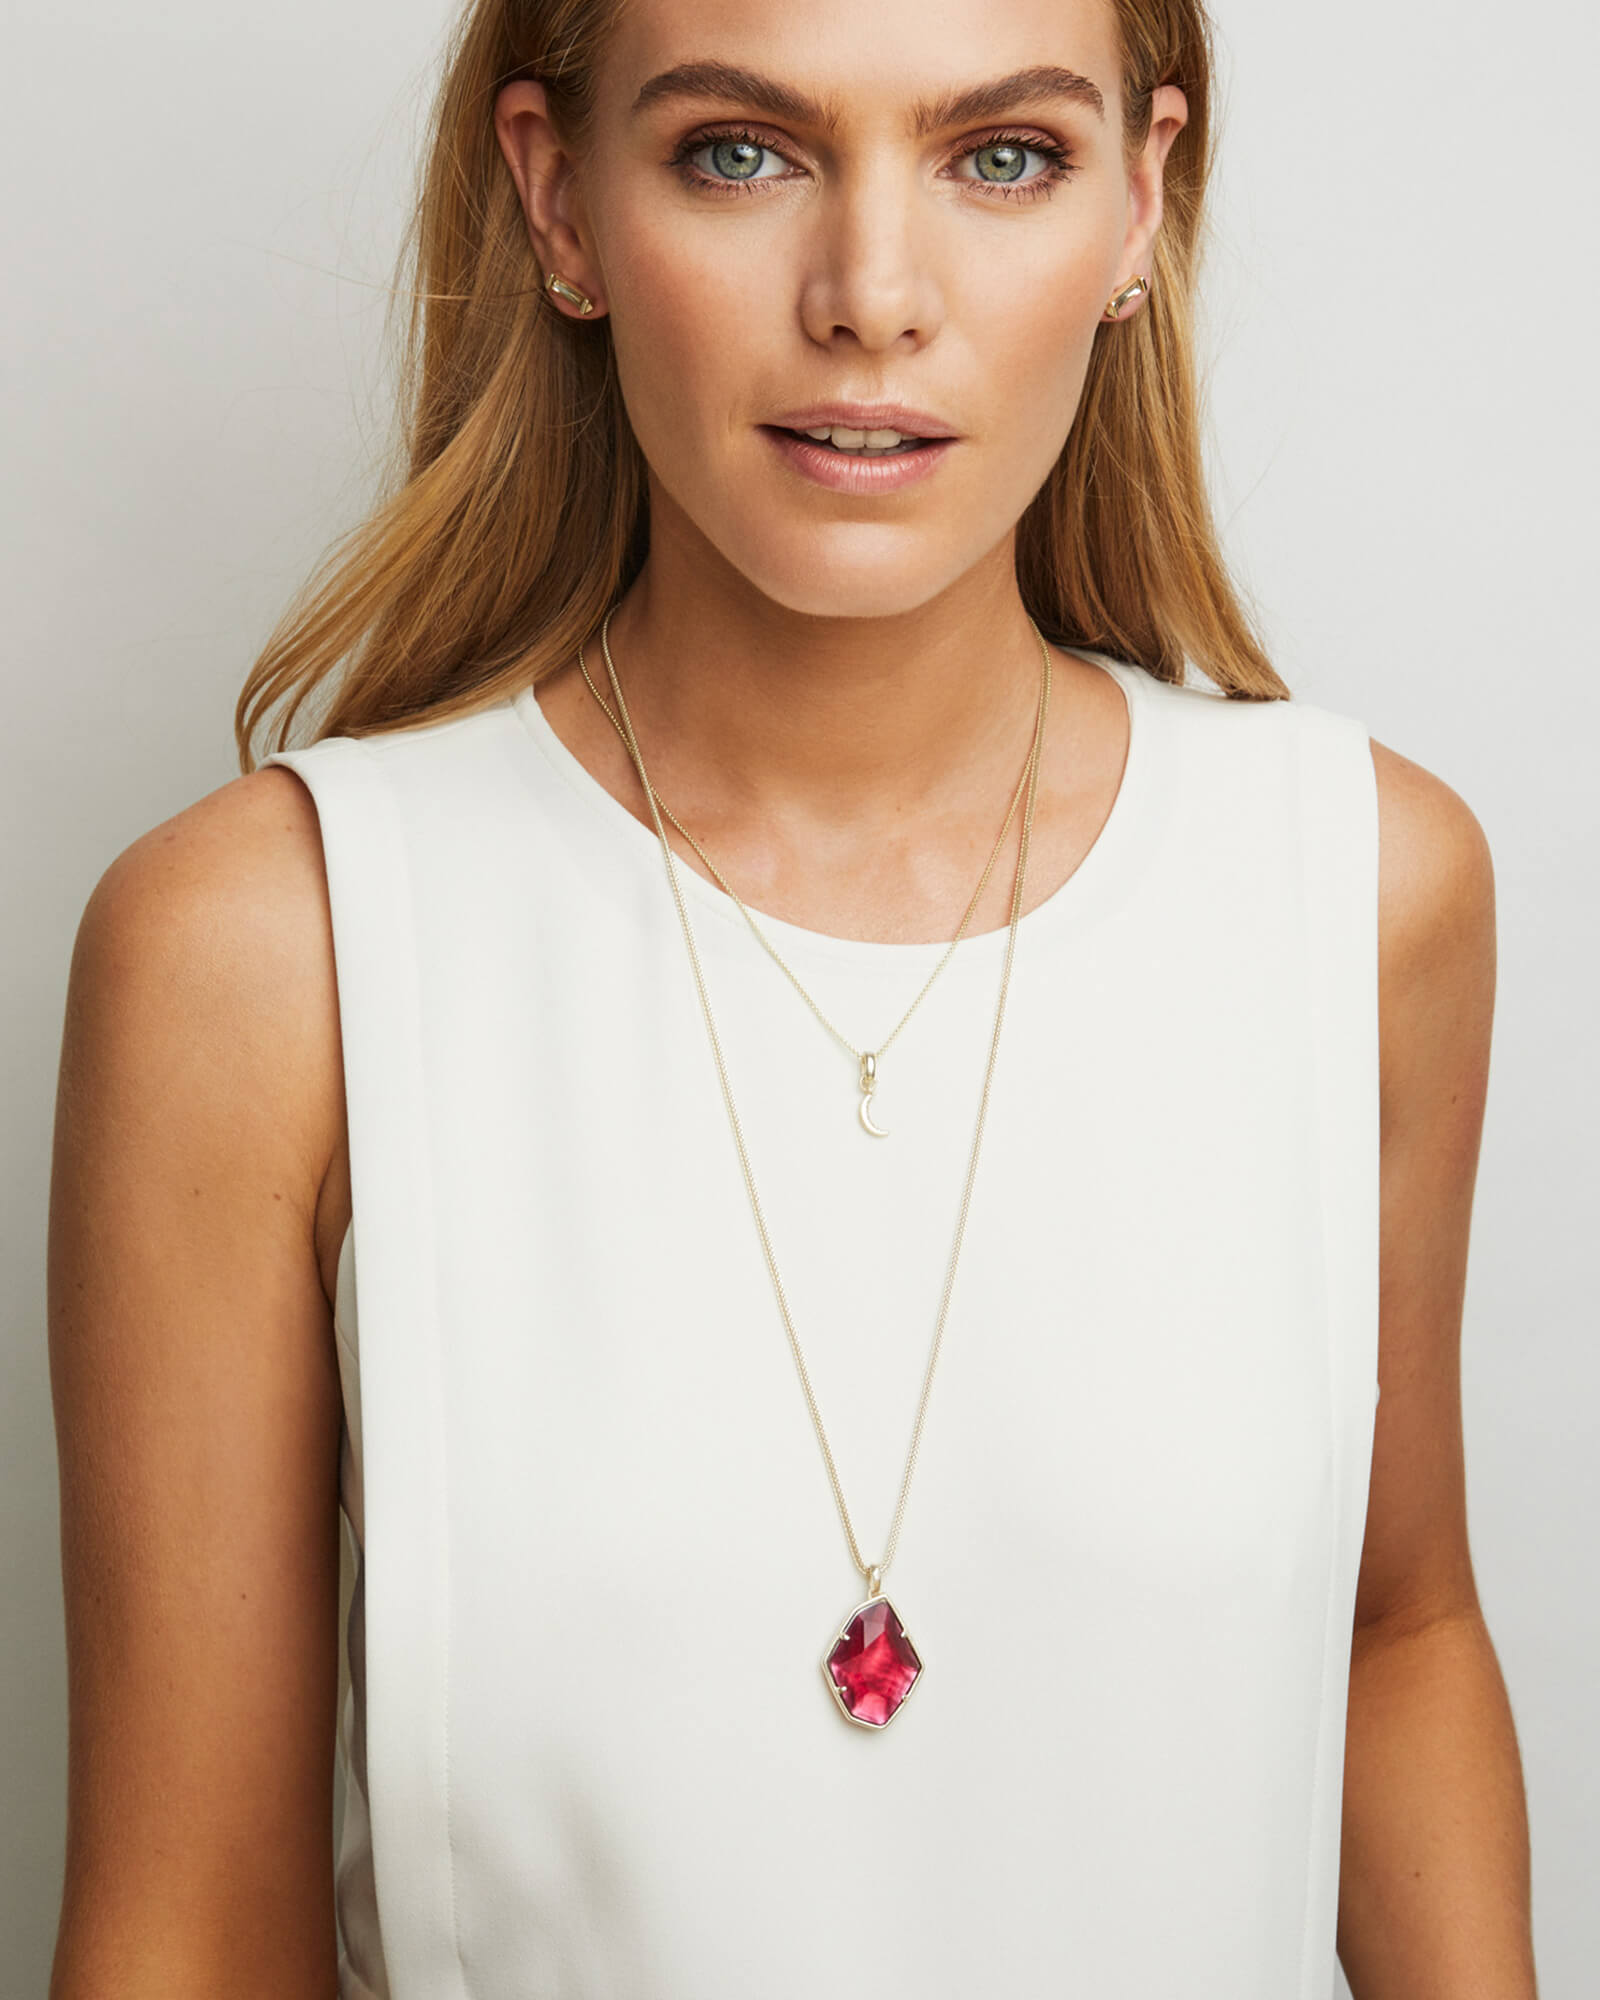 Kalani Gold Pendant Necklace in Berry Illusion